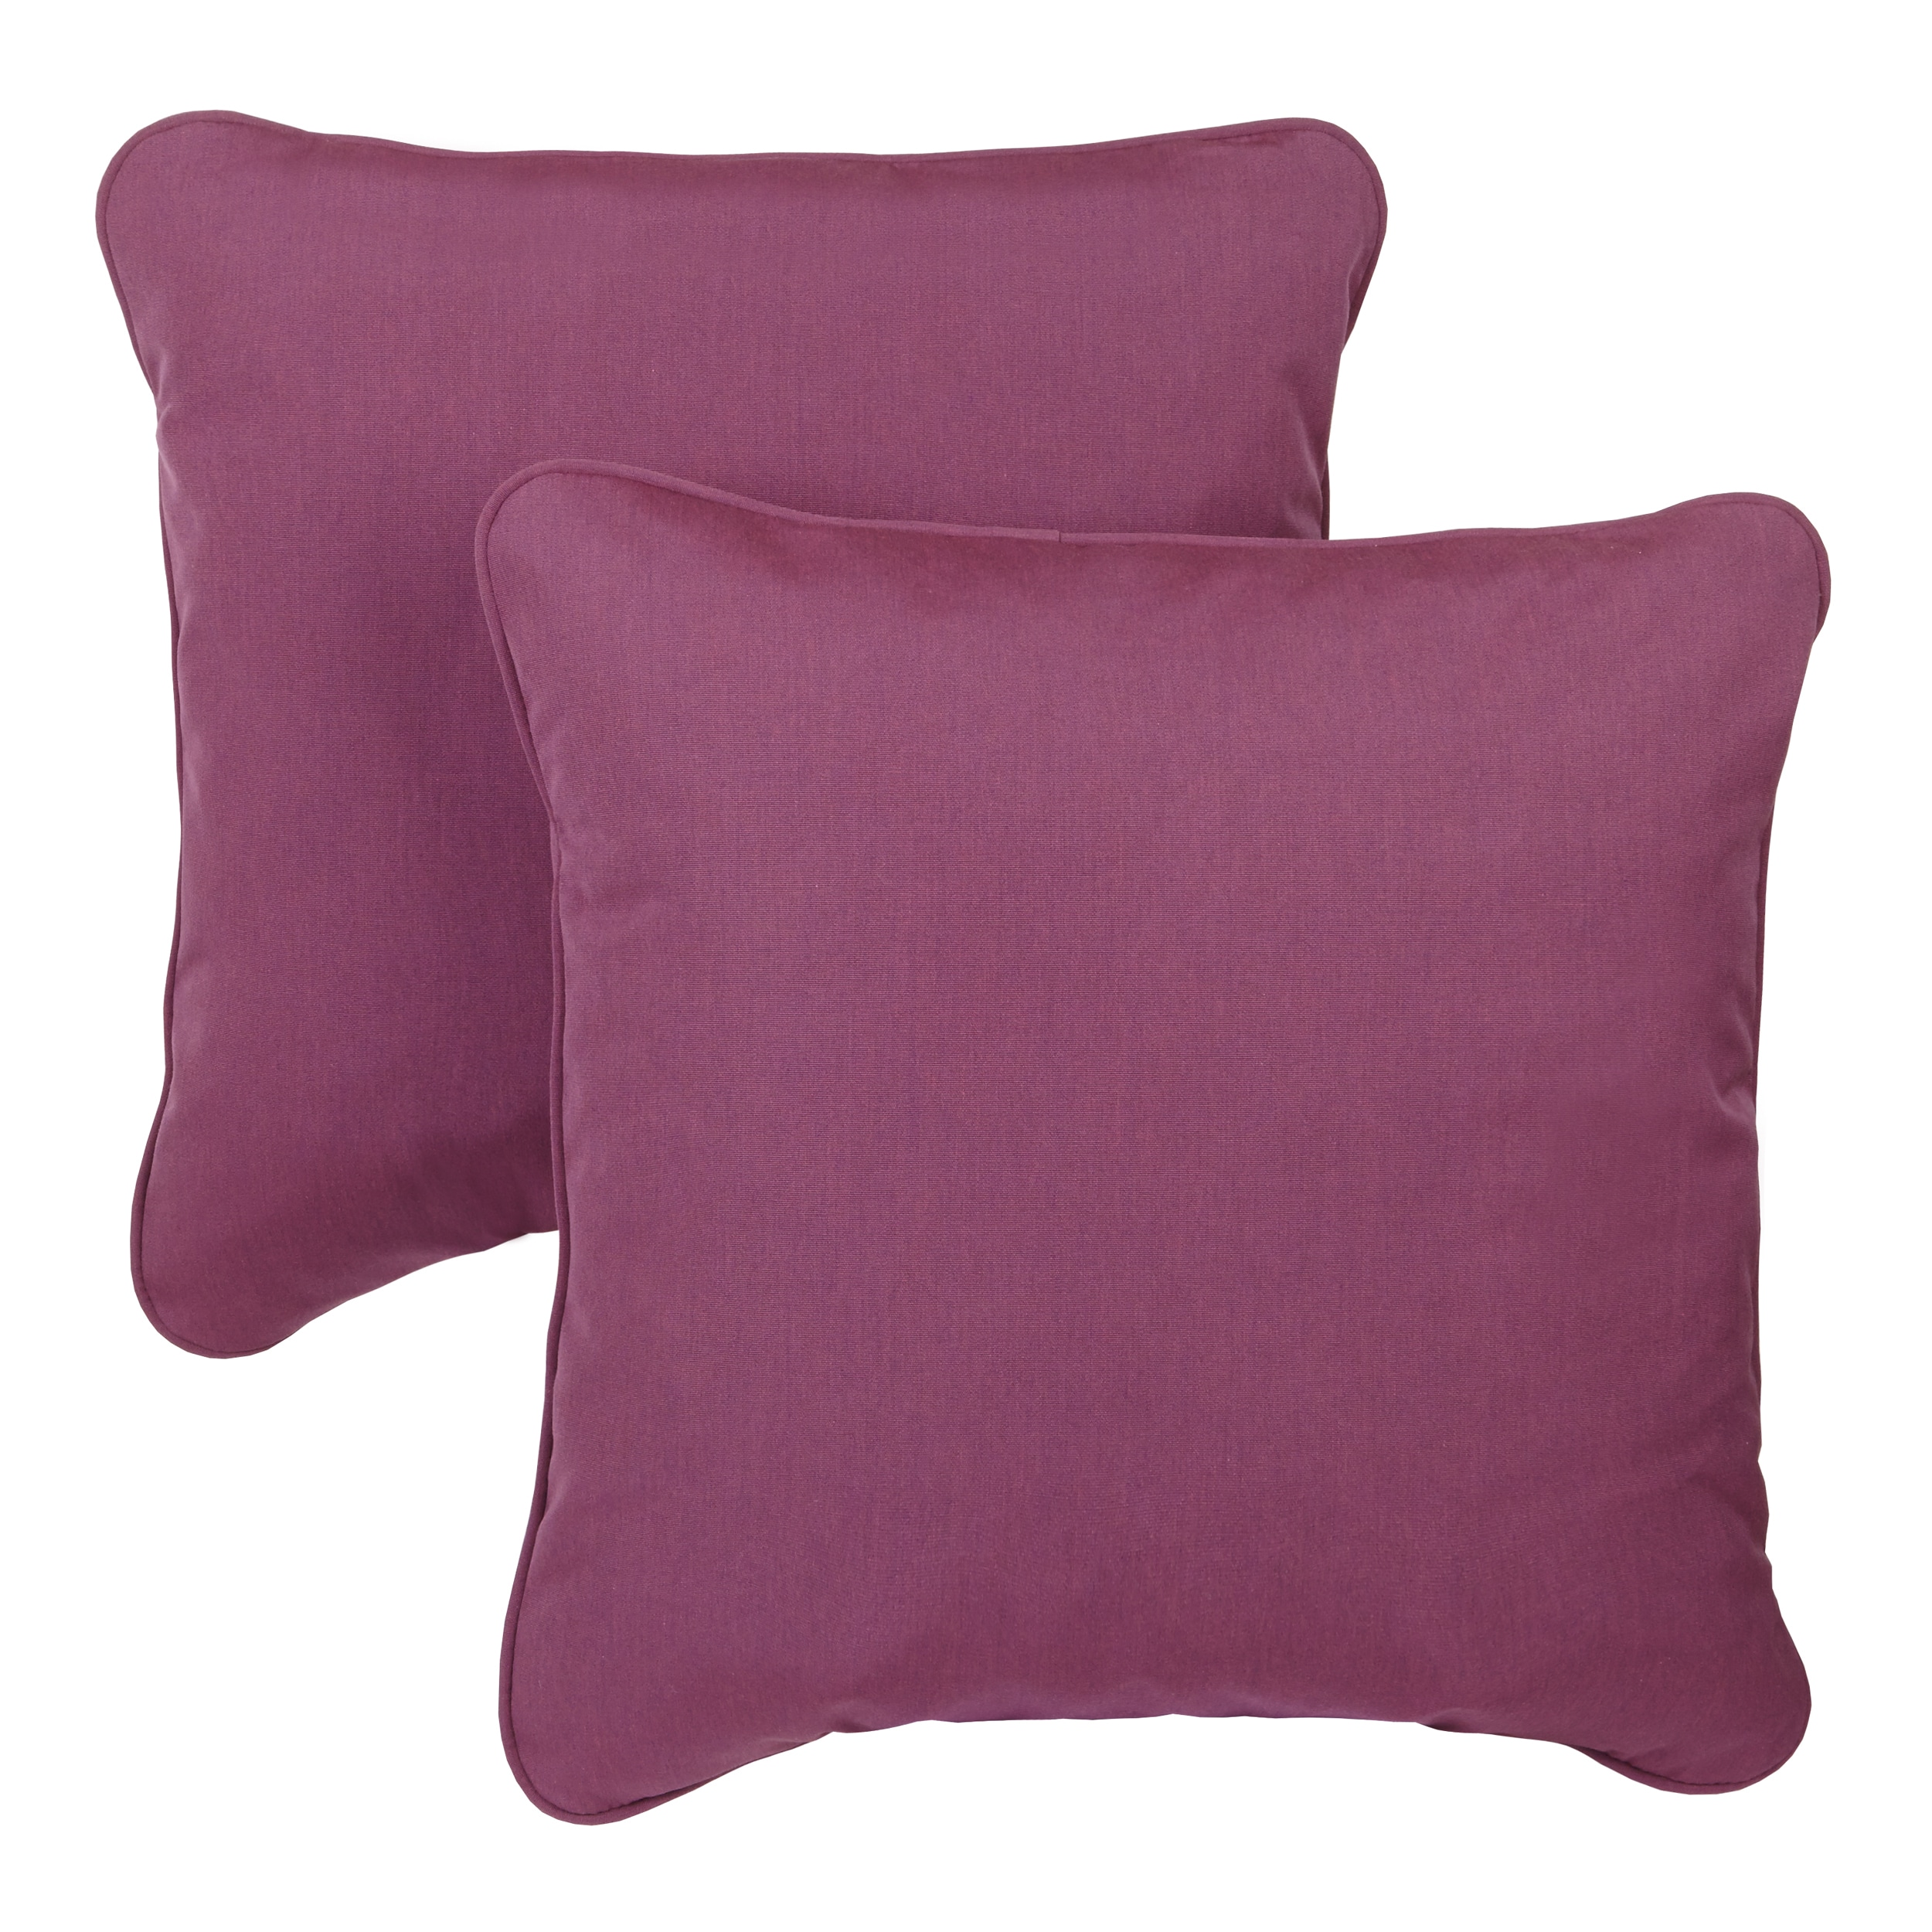 Pillows Online Buy Outdoor Cushions And Pillows Online At Overstock Our